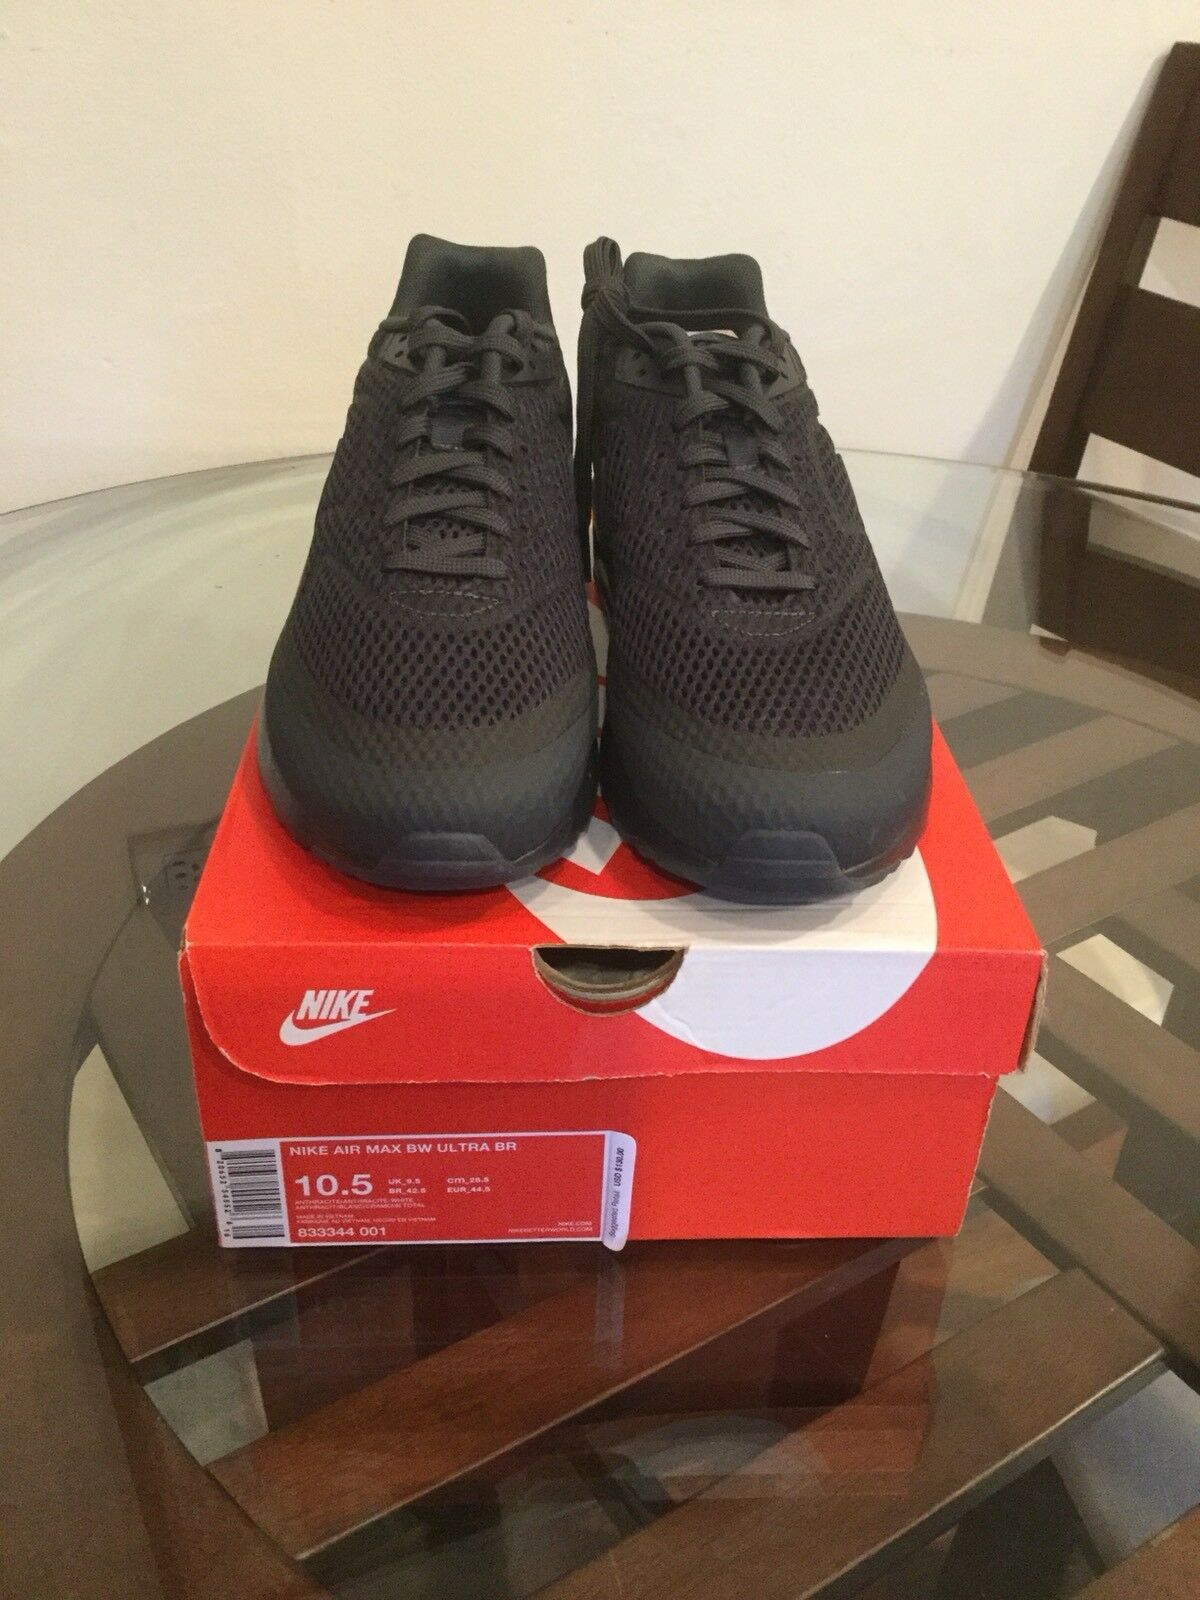 Nike Air Max BW Black Ultra BR Breathe Anthracite Triple Black BW 833344-001 Size 10.5 d4cc96